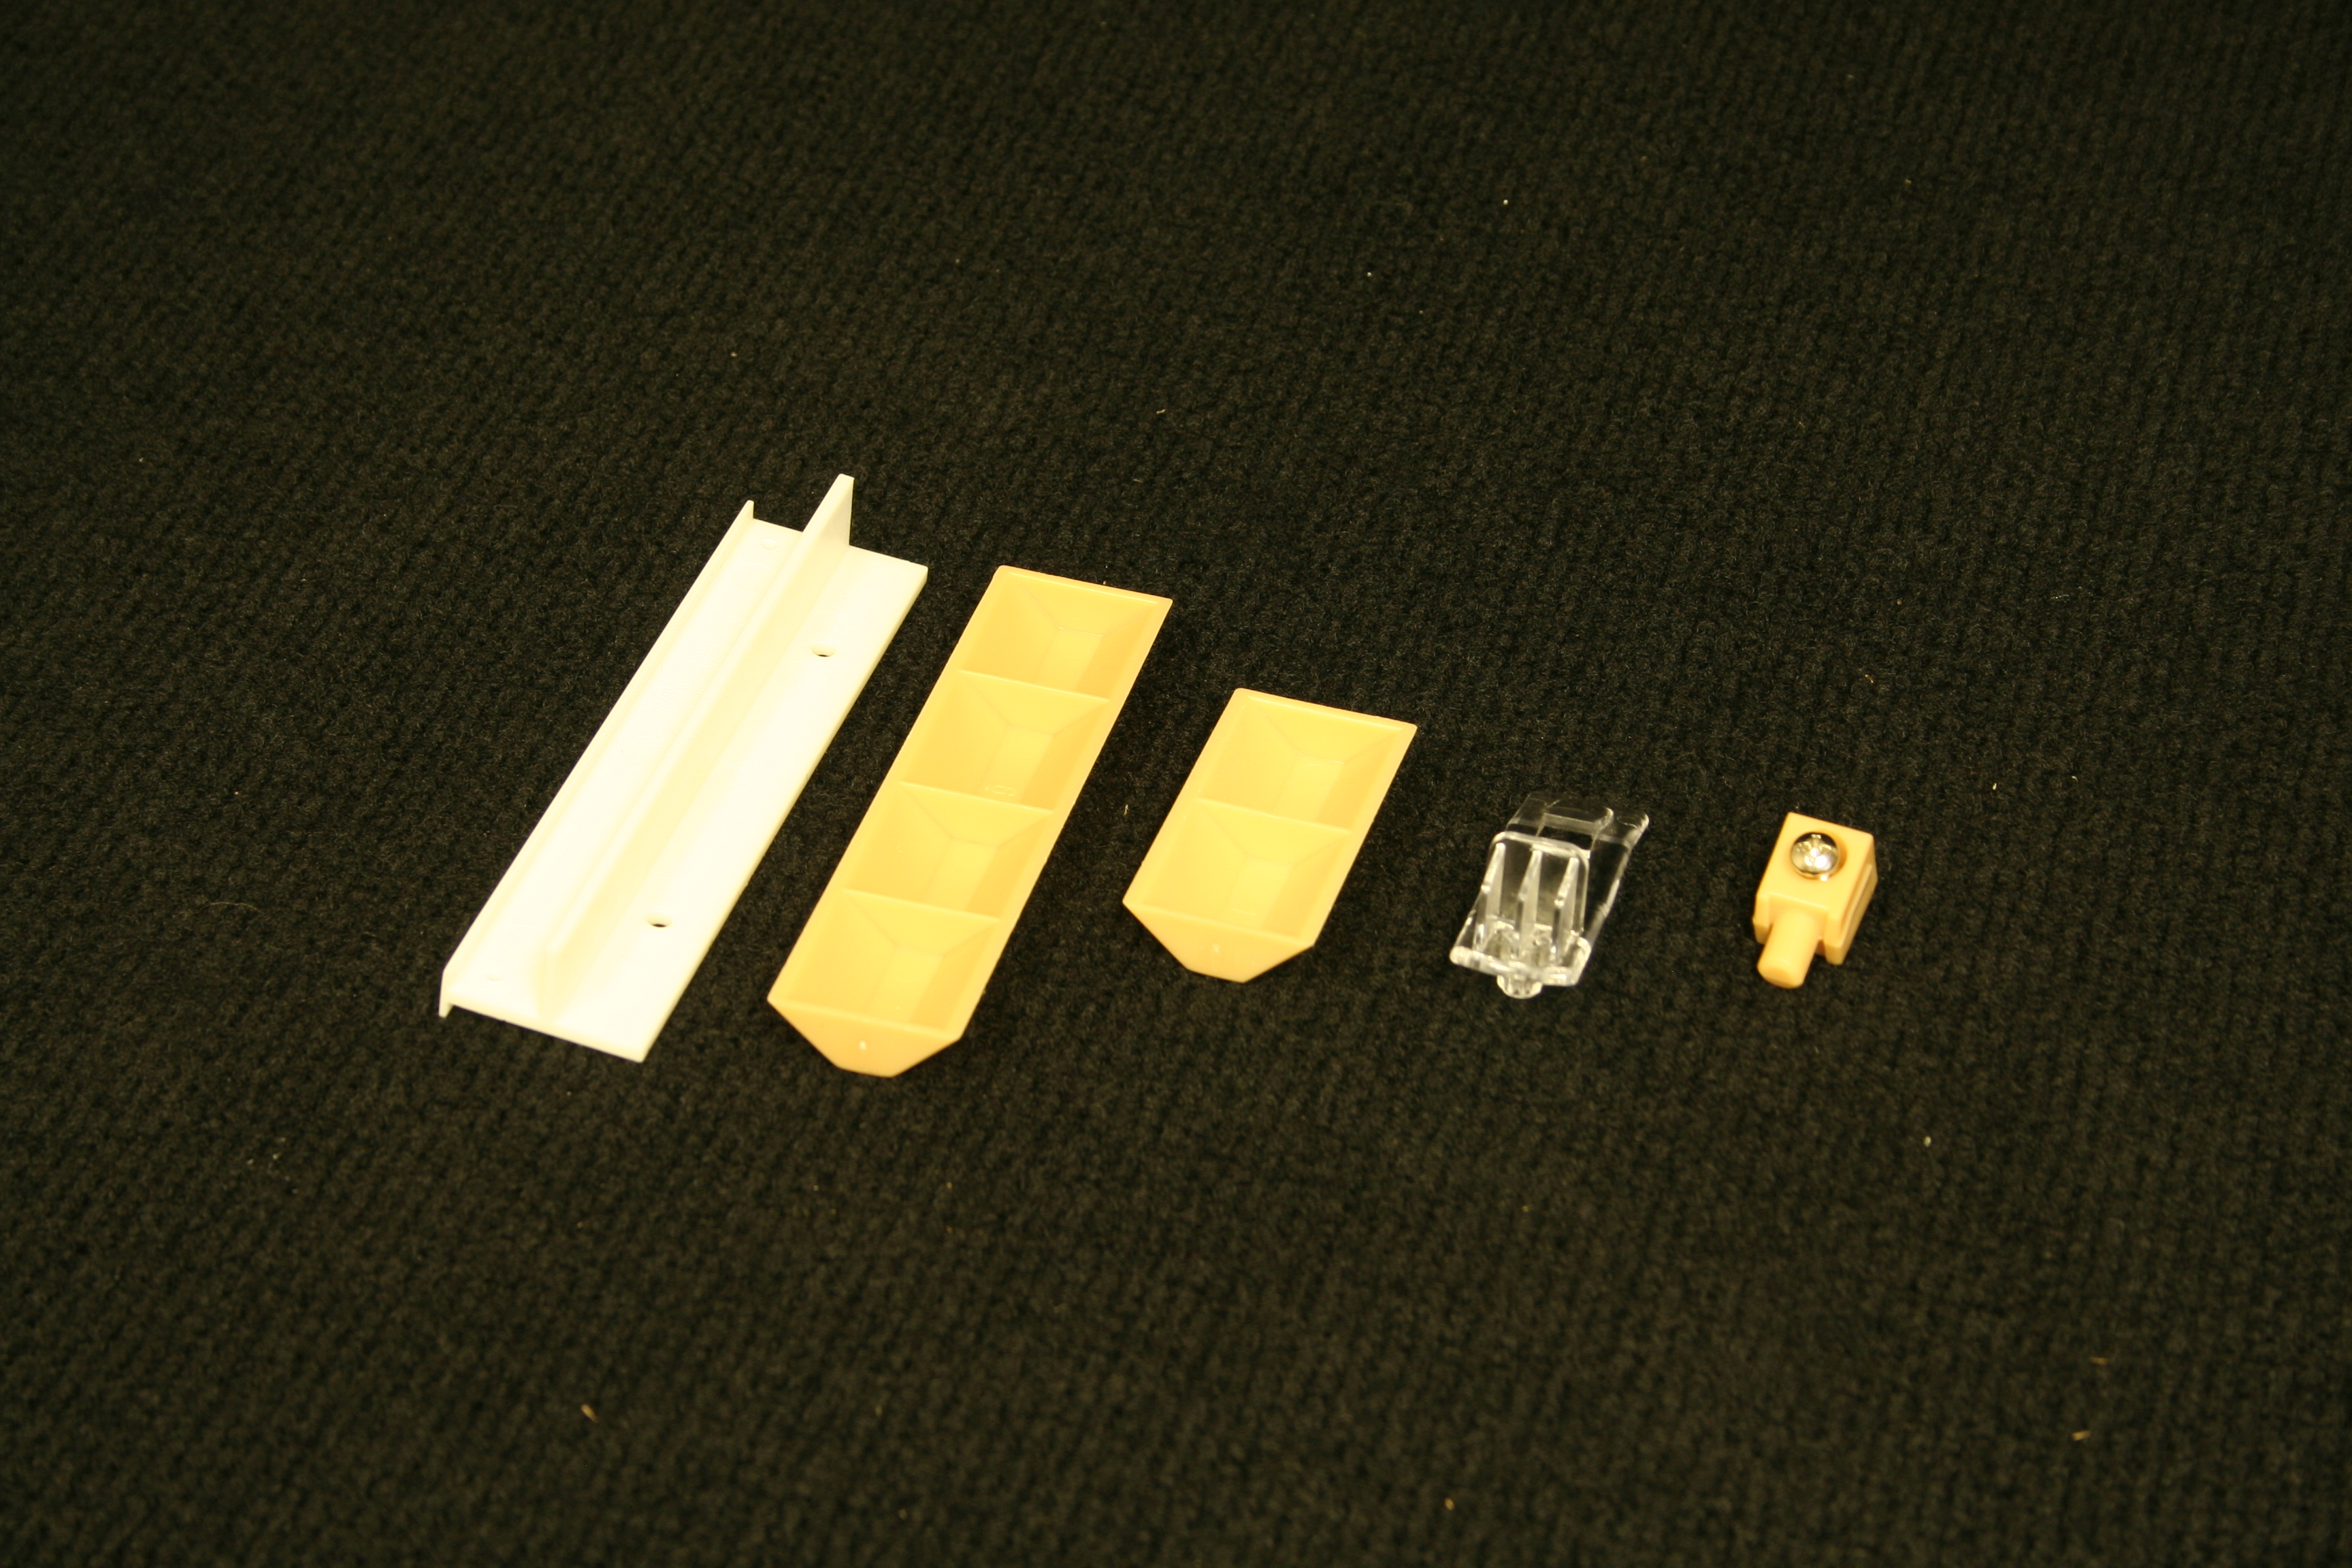 Assembly Fasteners – Cana Cabinetry Components